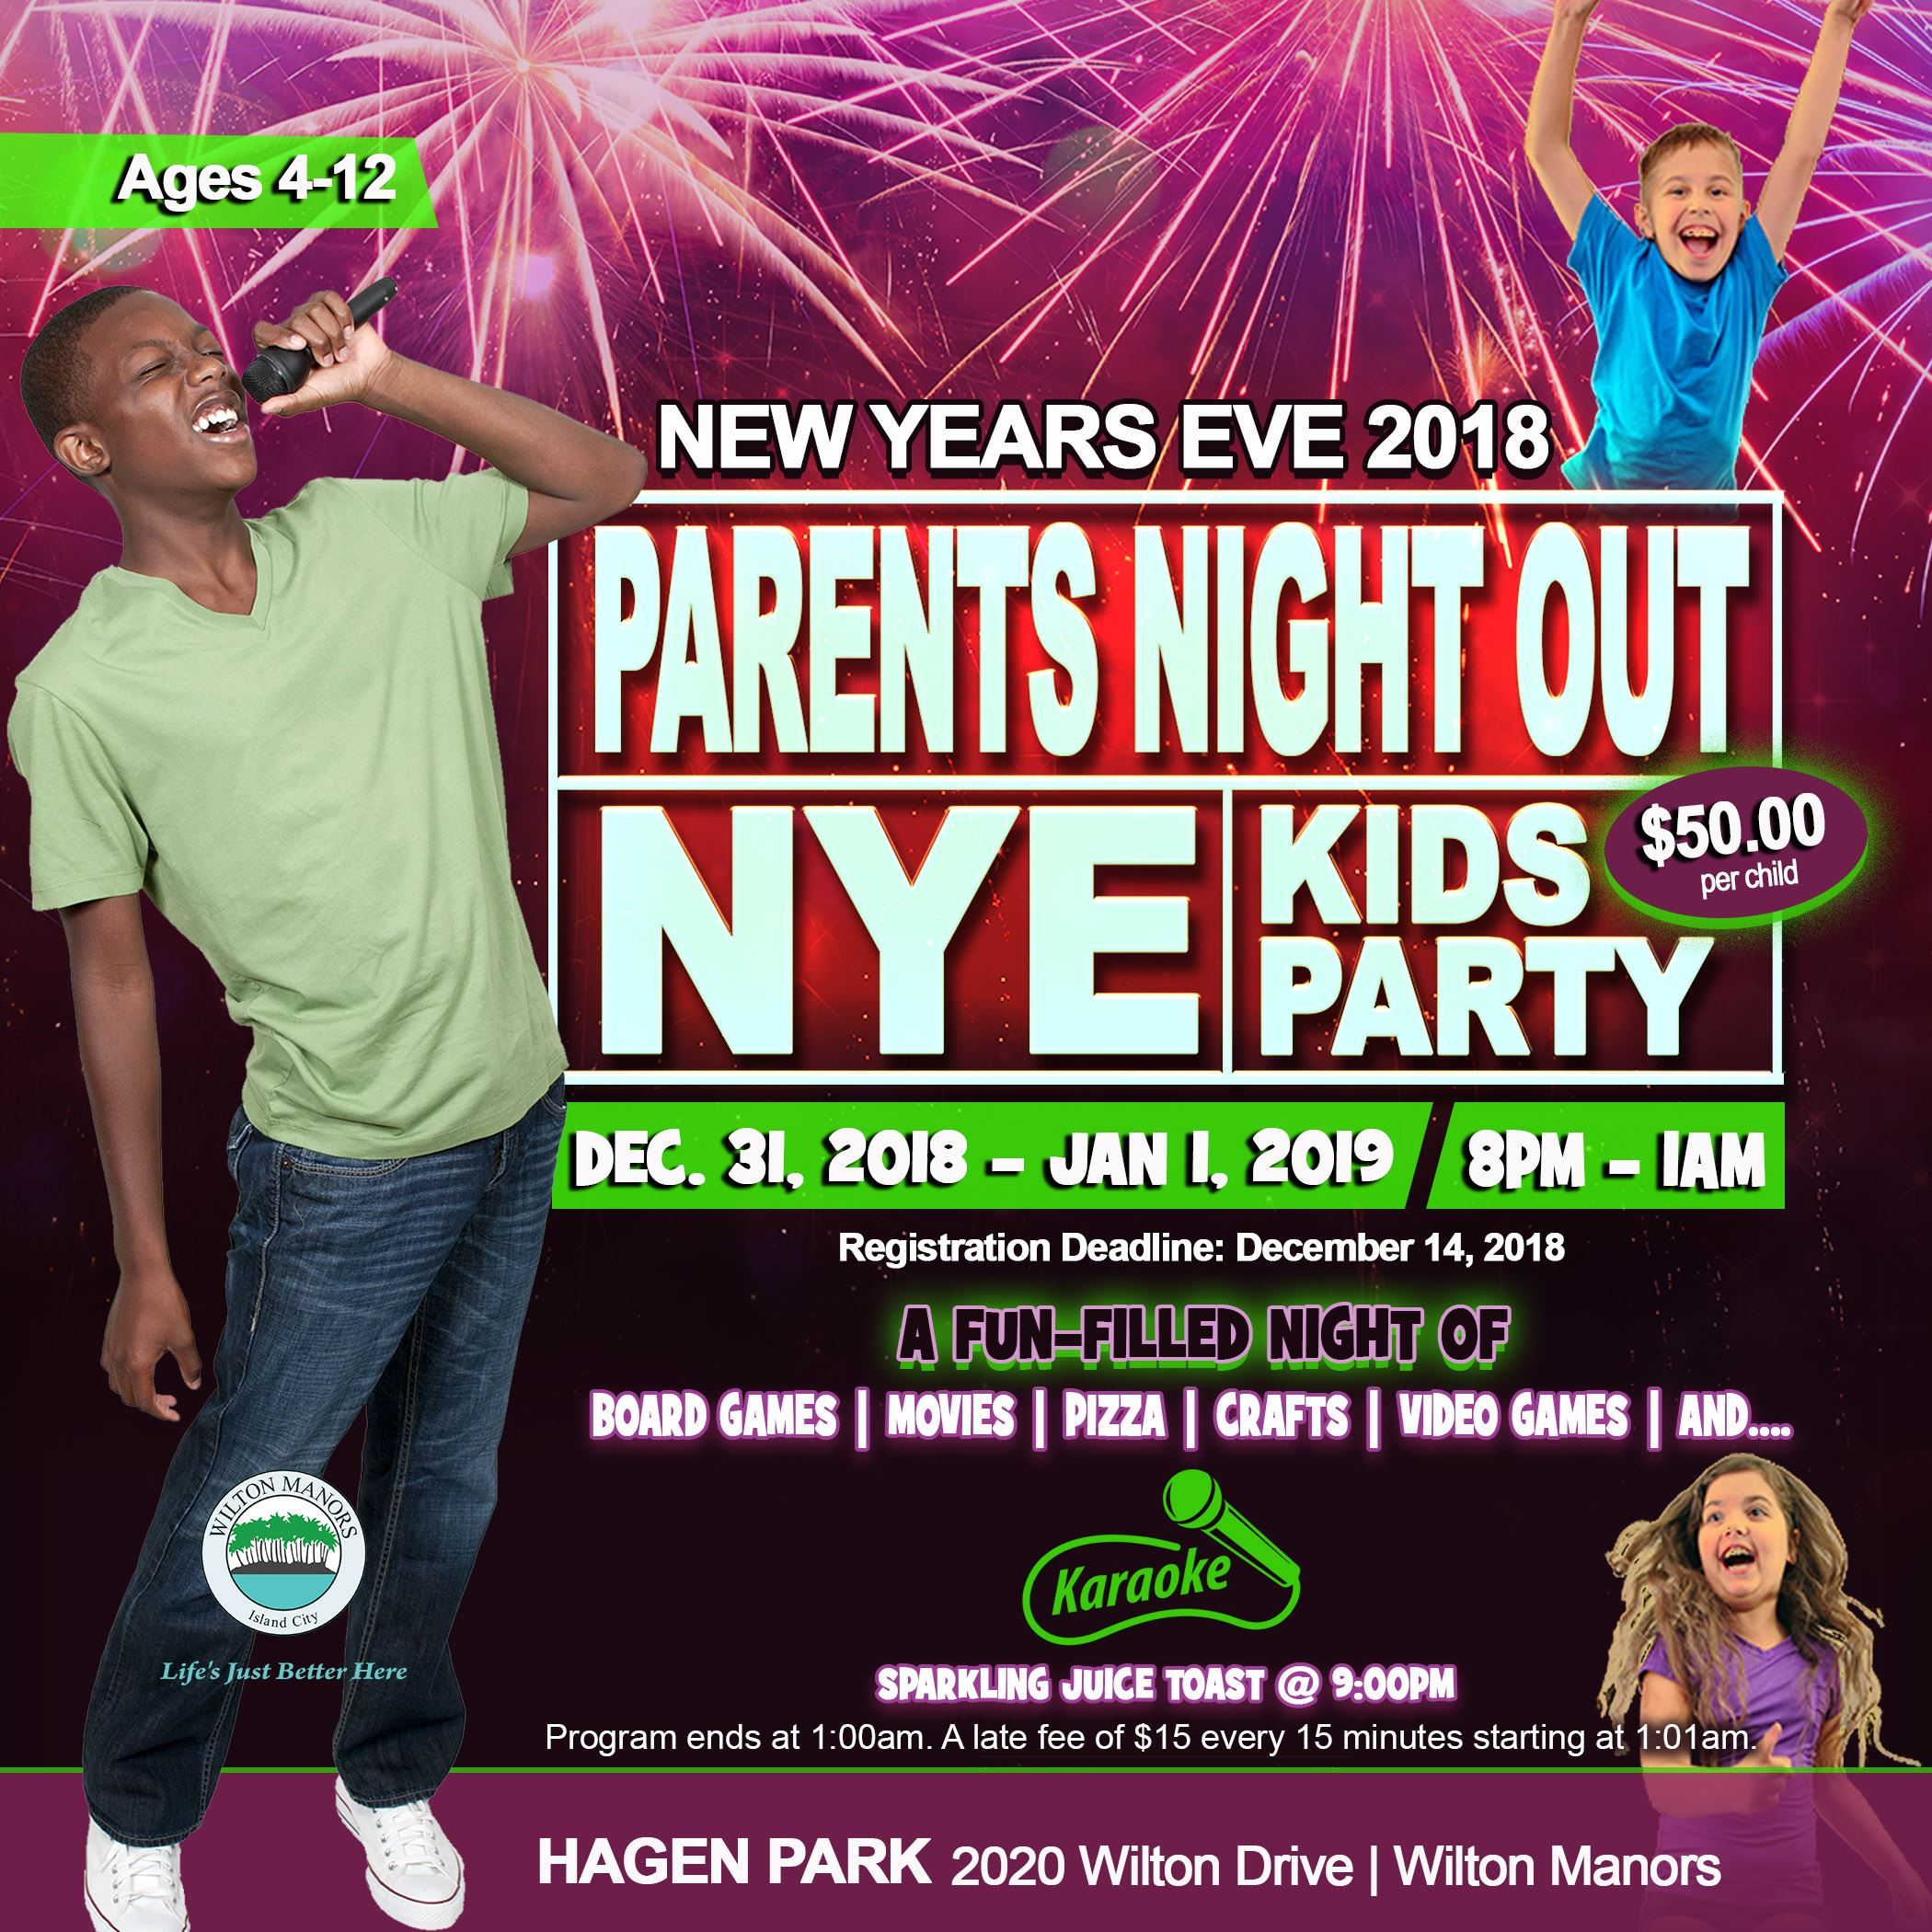 Parents Night Out New Year Kid Party